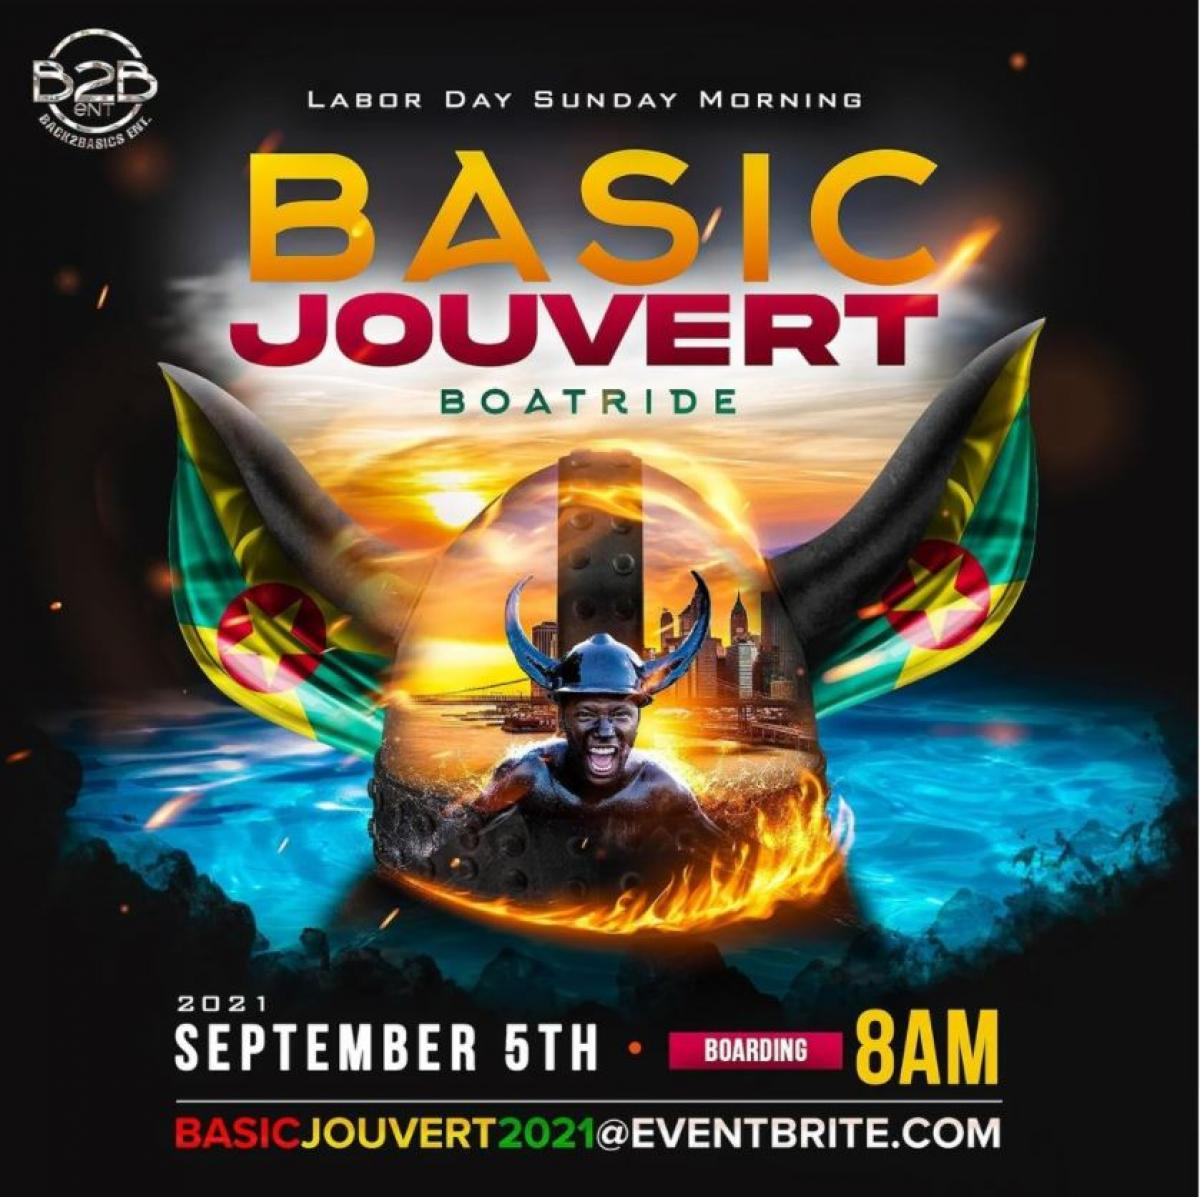 Basic Jouvert Boatride flyer or graphic.